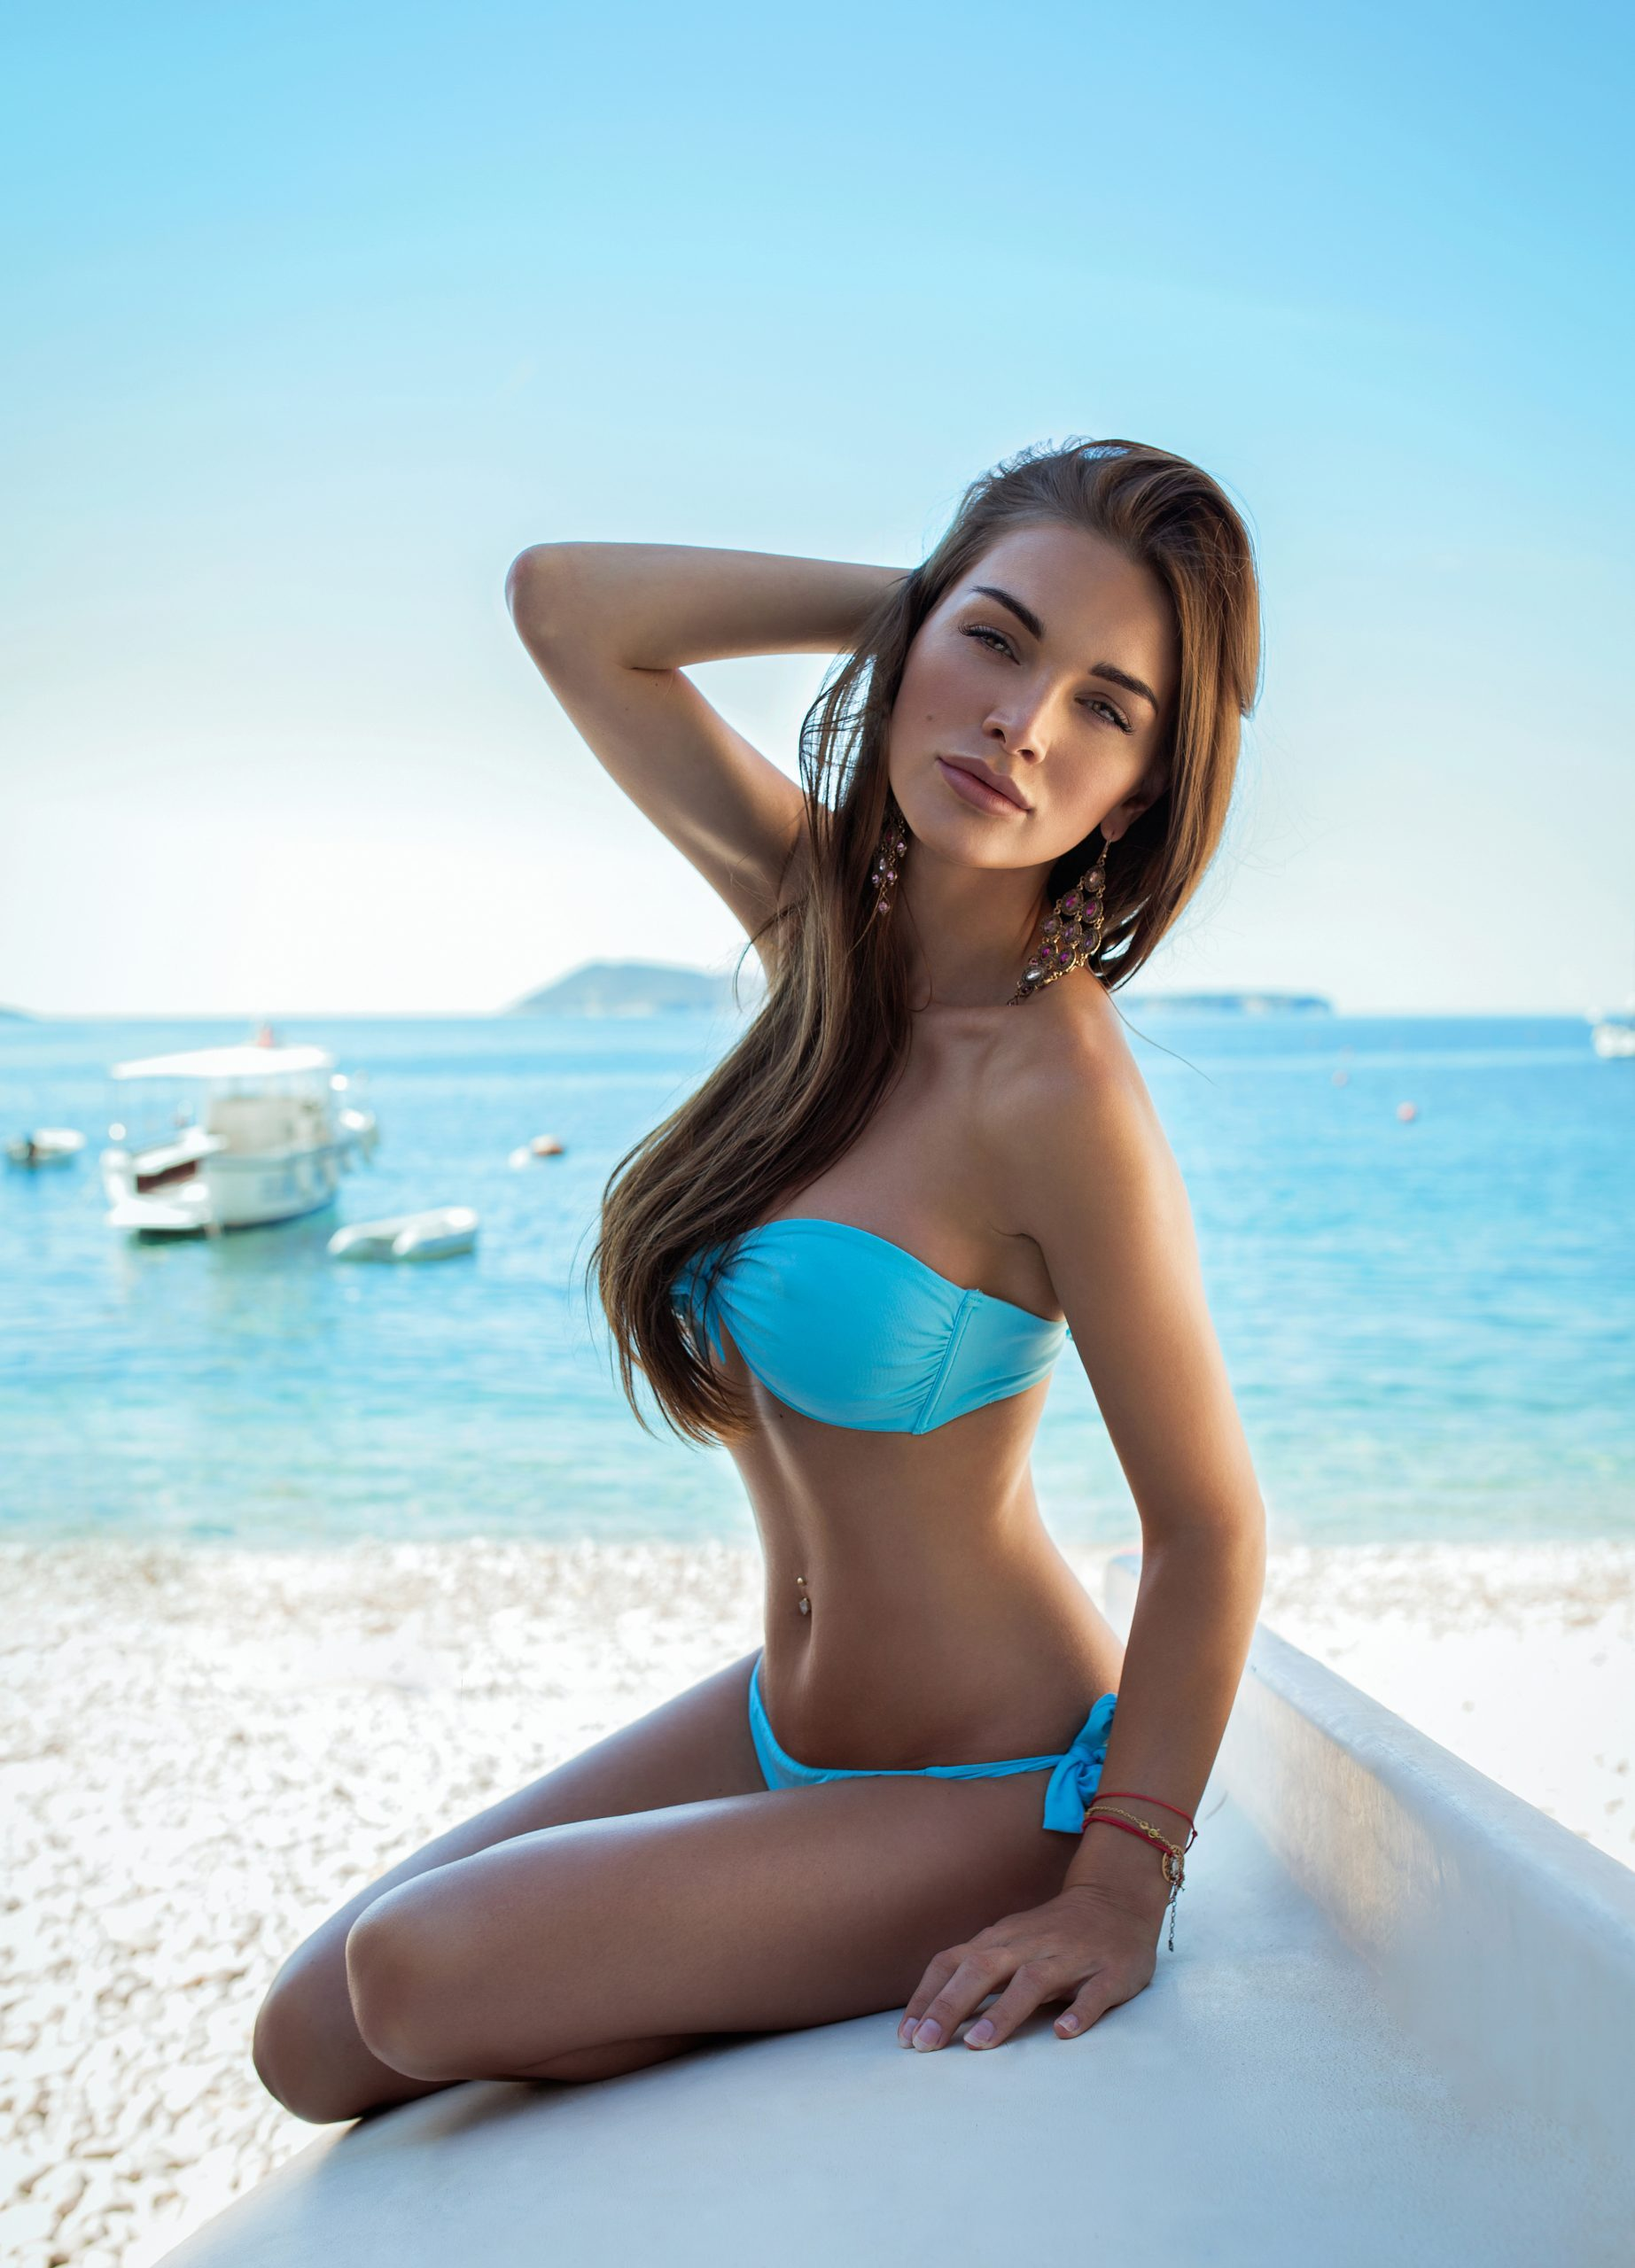 Should You Add Liposuction To Your Tummy Tuck?